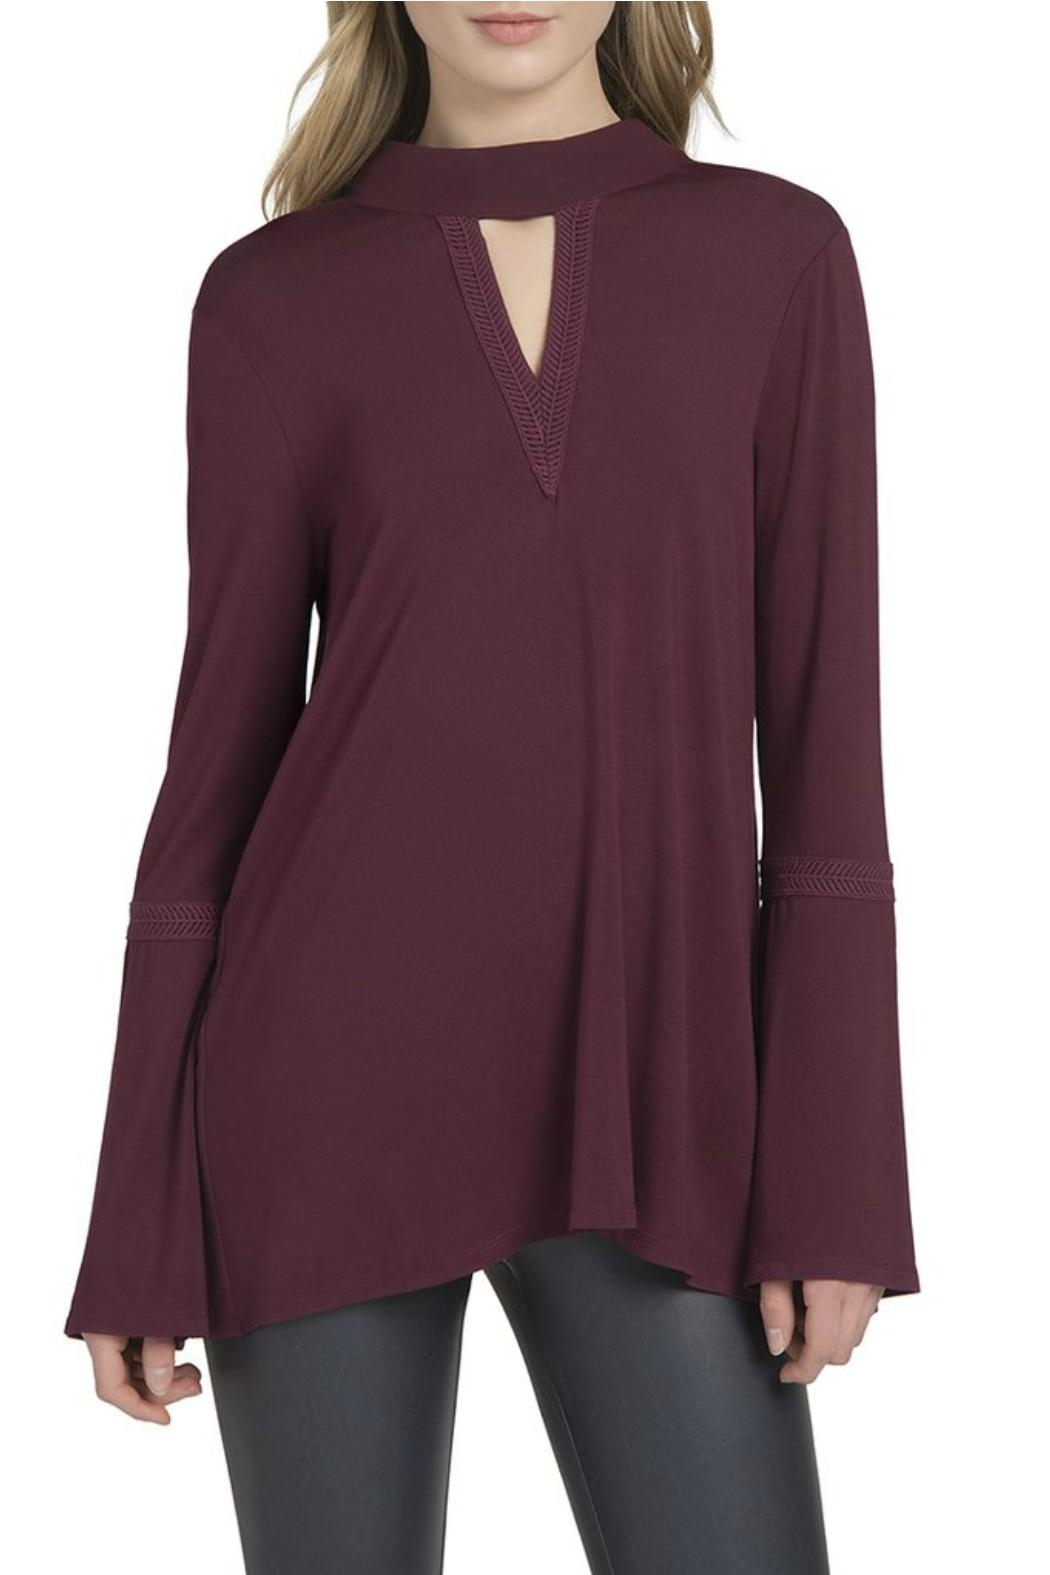 Lysse Ainsley Bell-Sleeve Top - Main Image